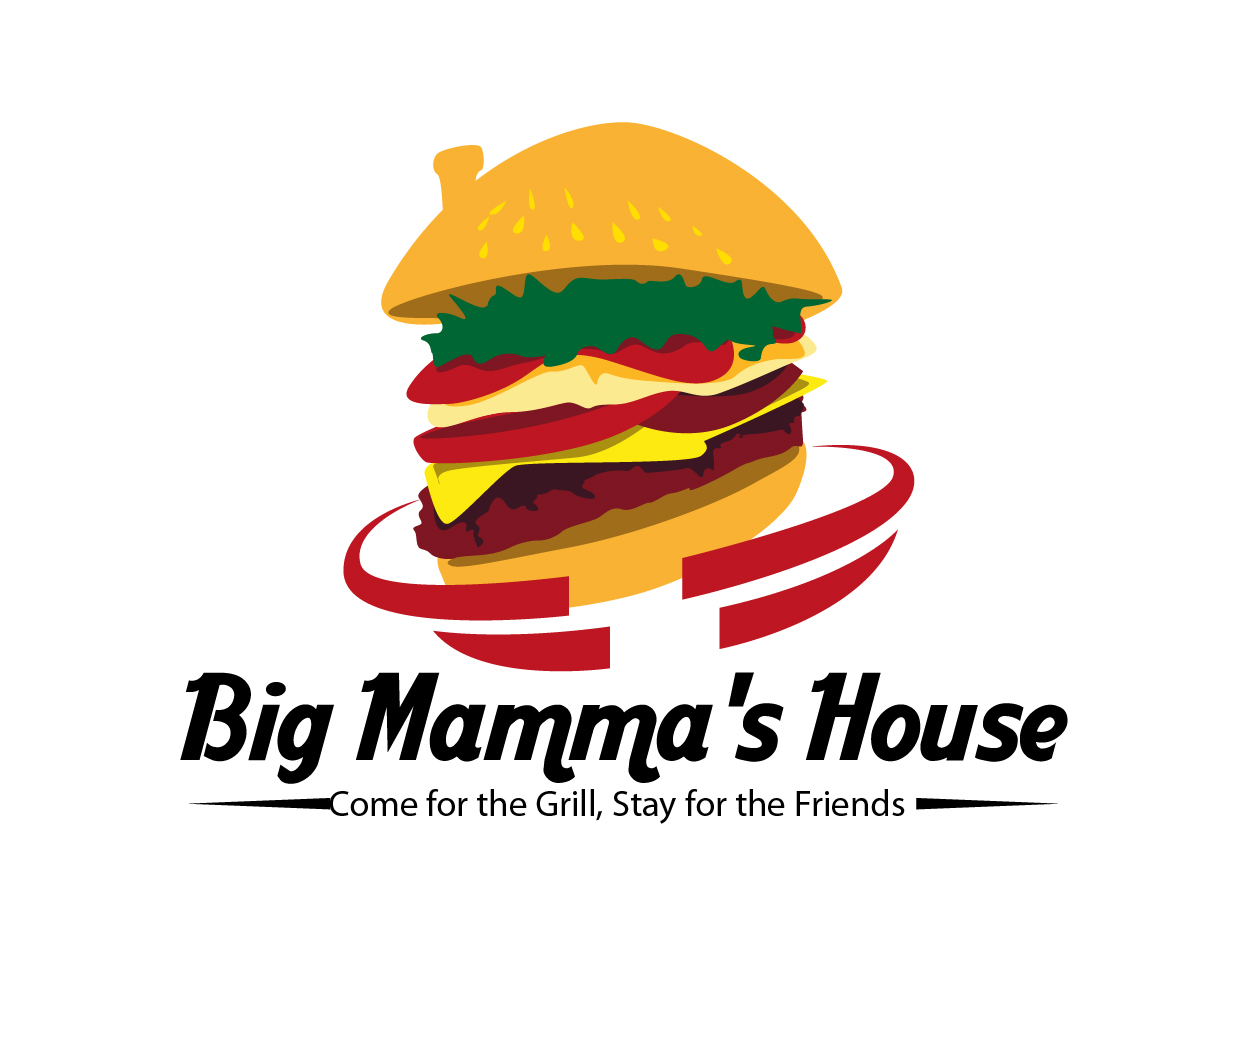 Logo Design by Ndaru Ap - Entry No. 12 in the Logo Design Contest Captivating Logo Design for Big Mamma's House.